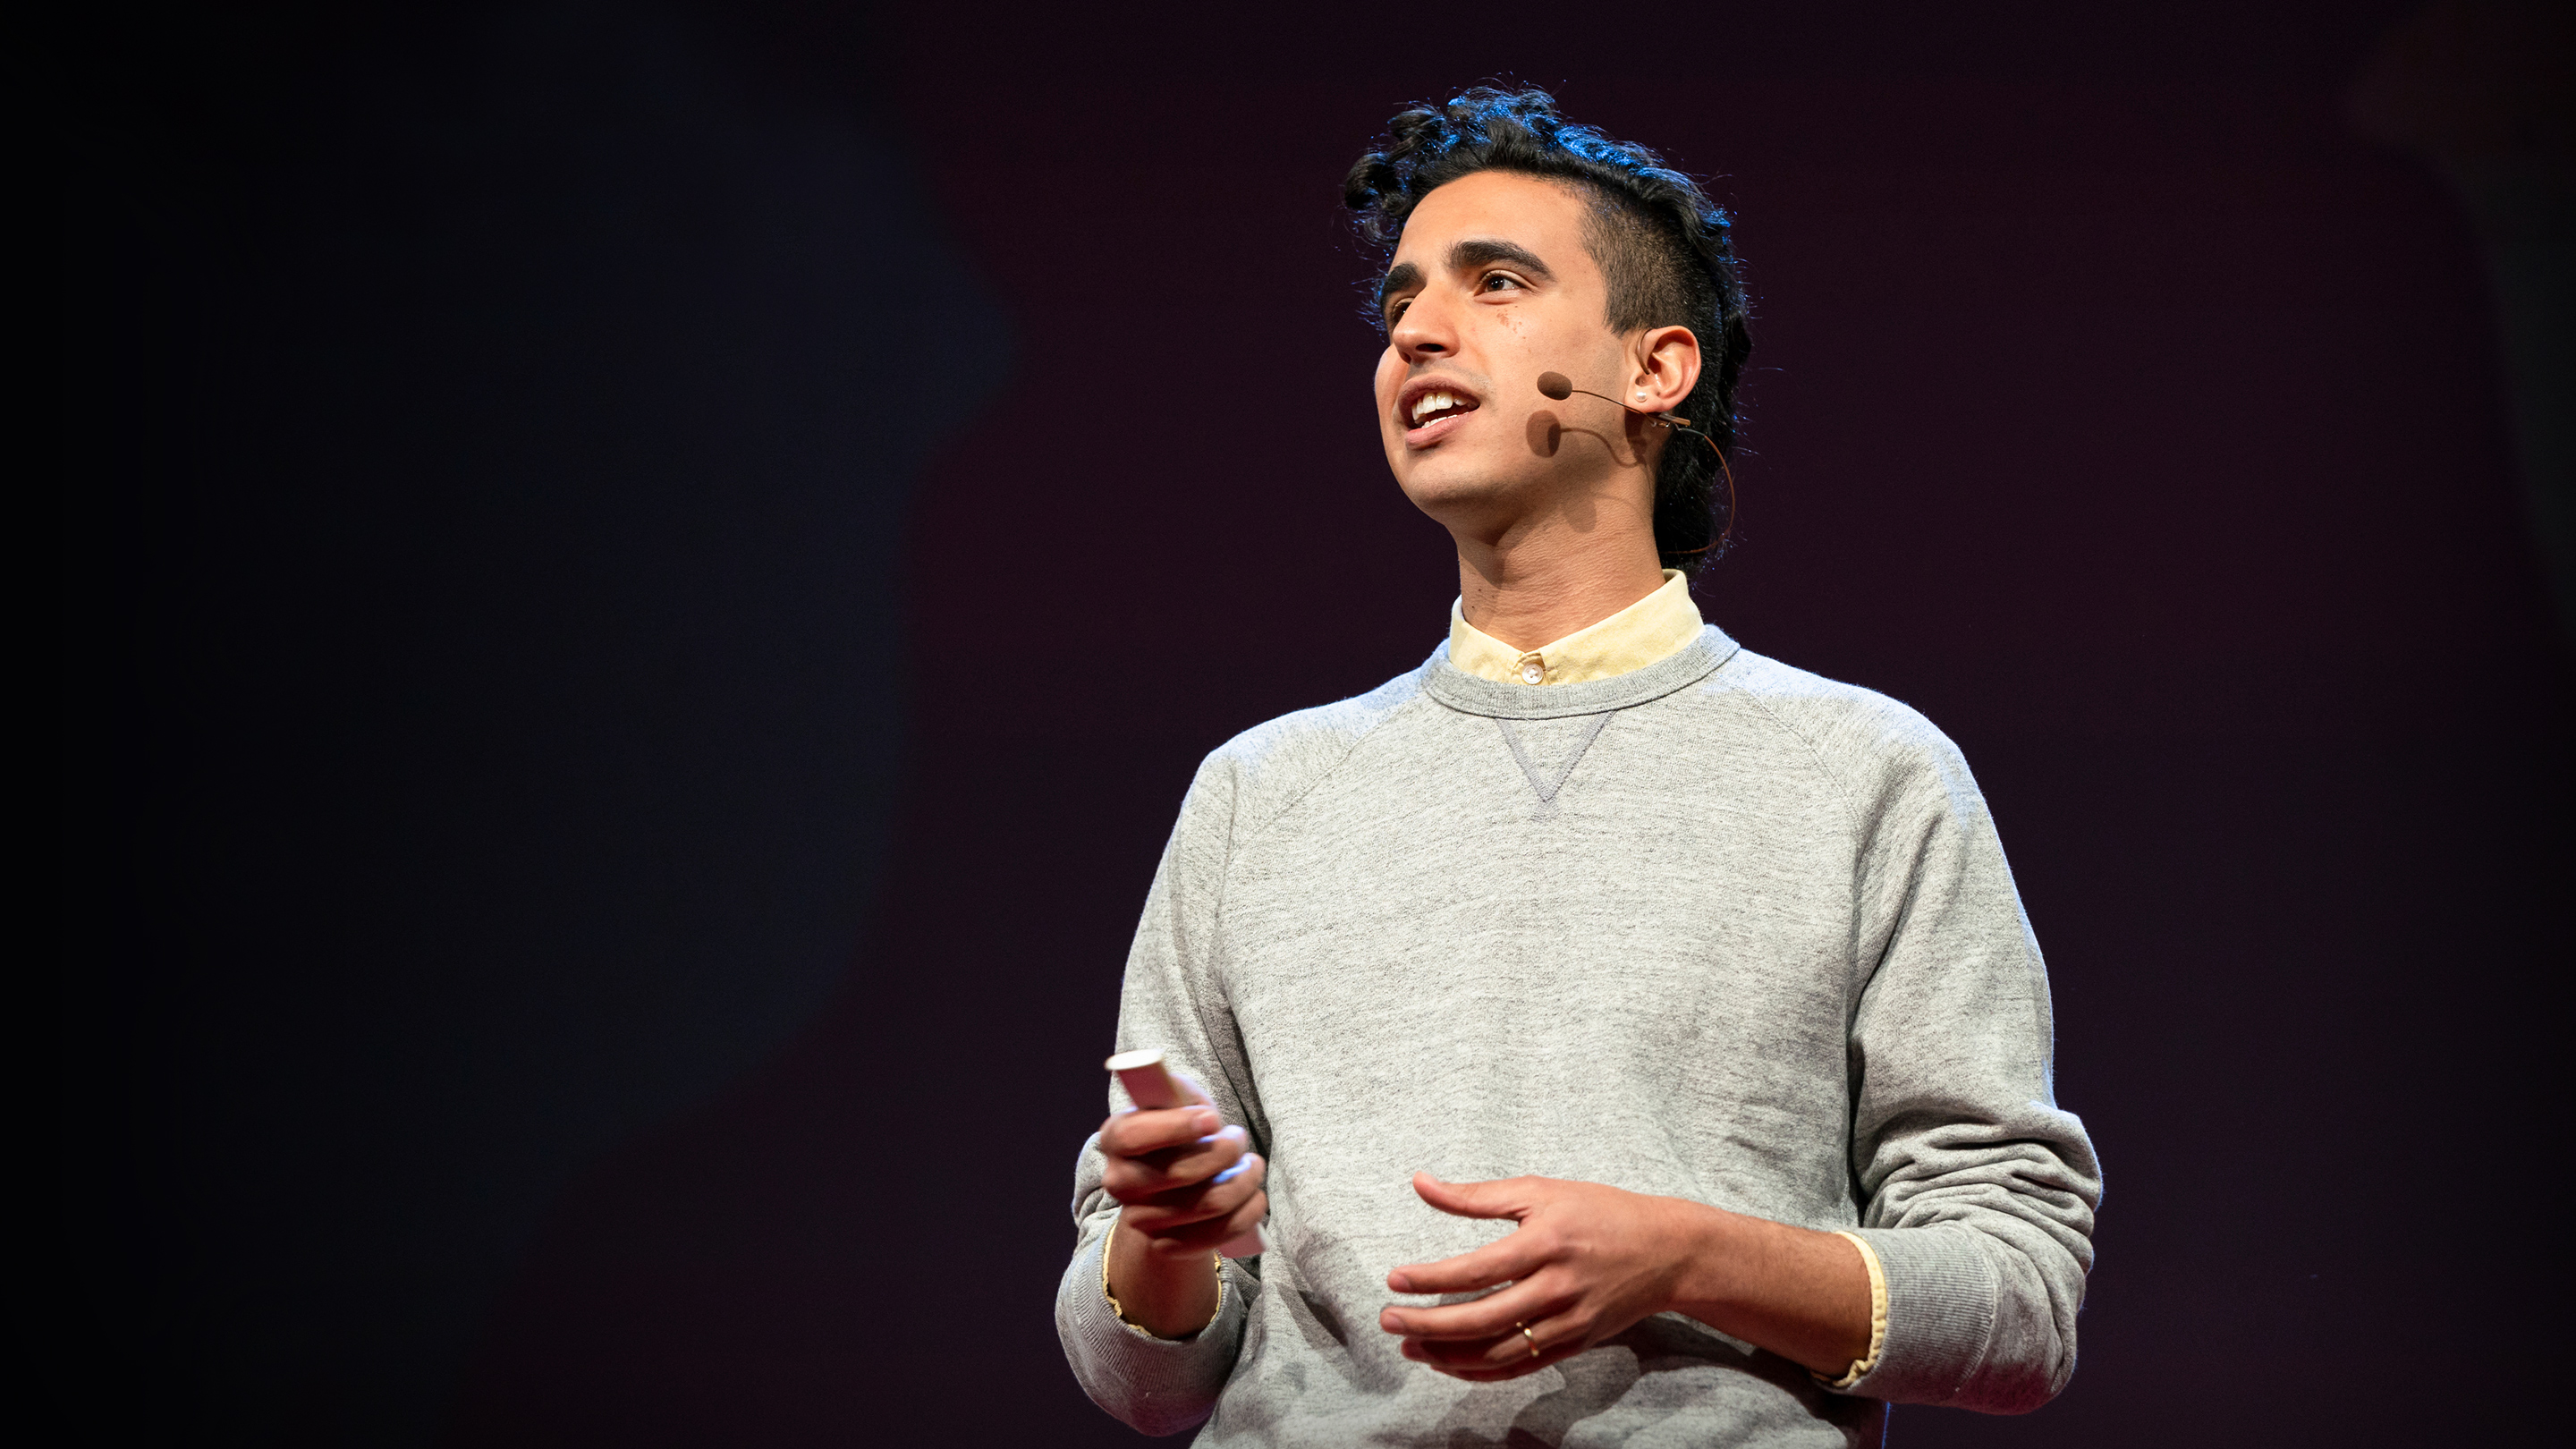 ted talk letting go of anger